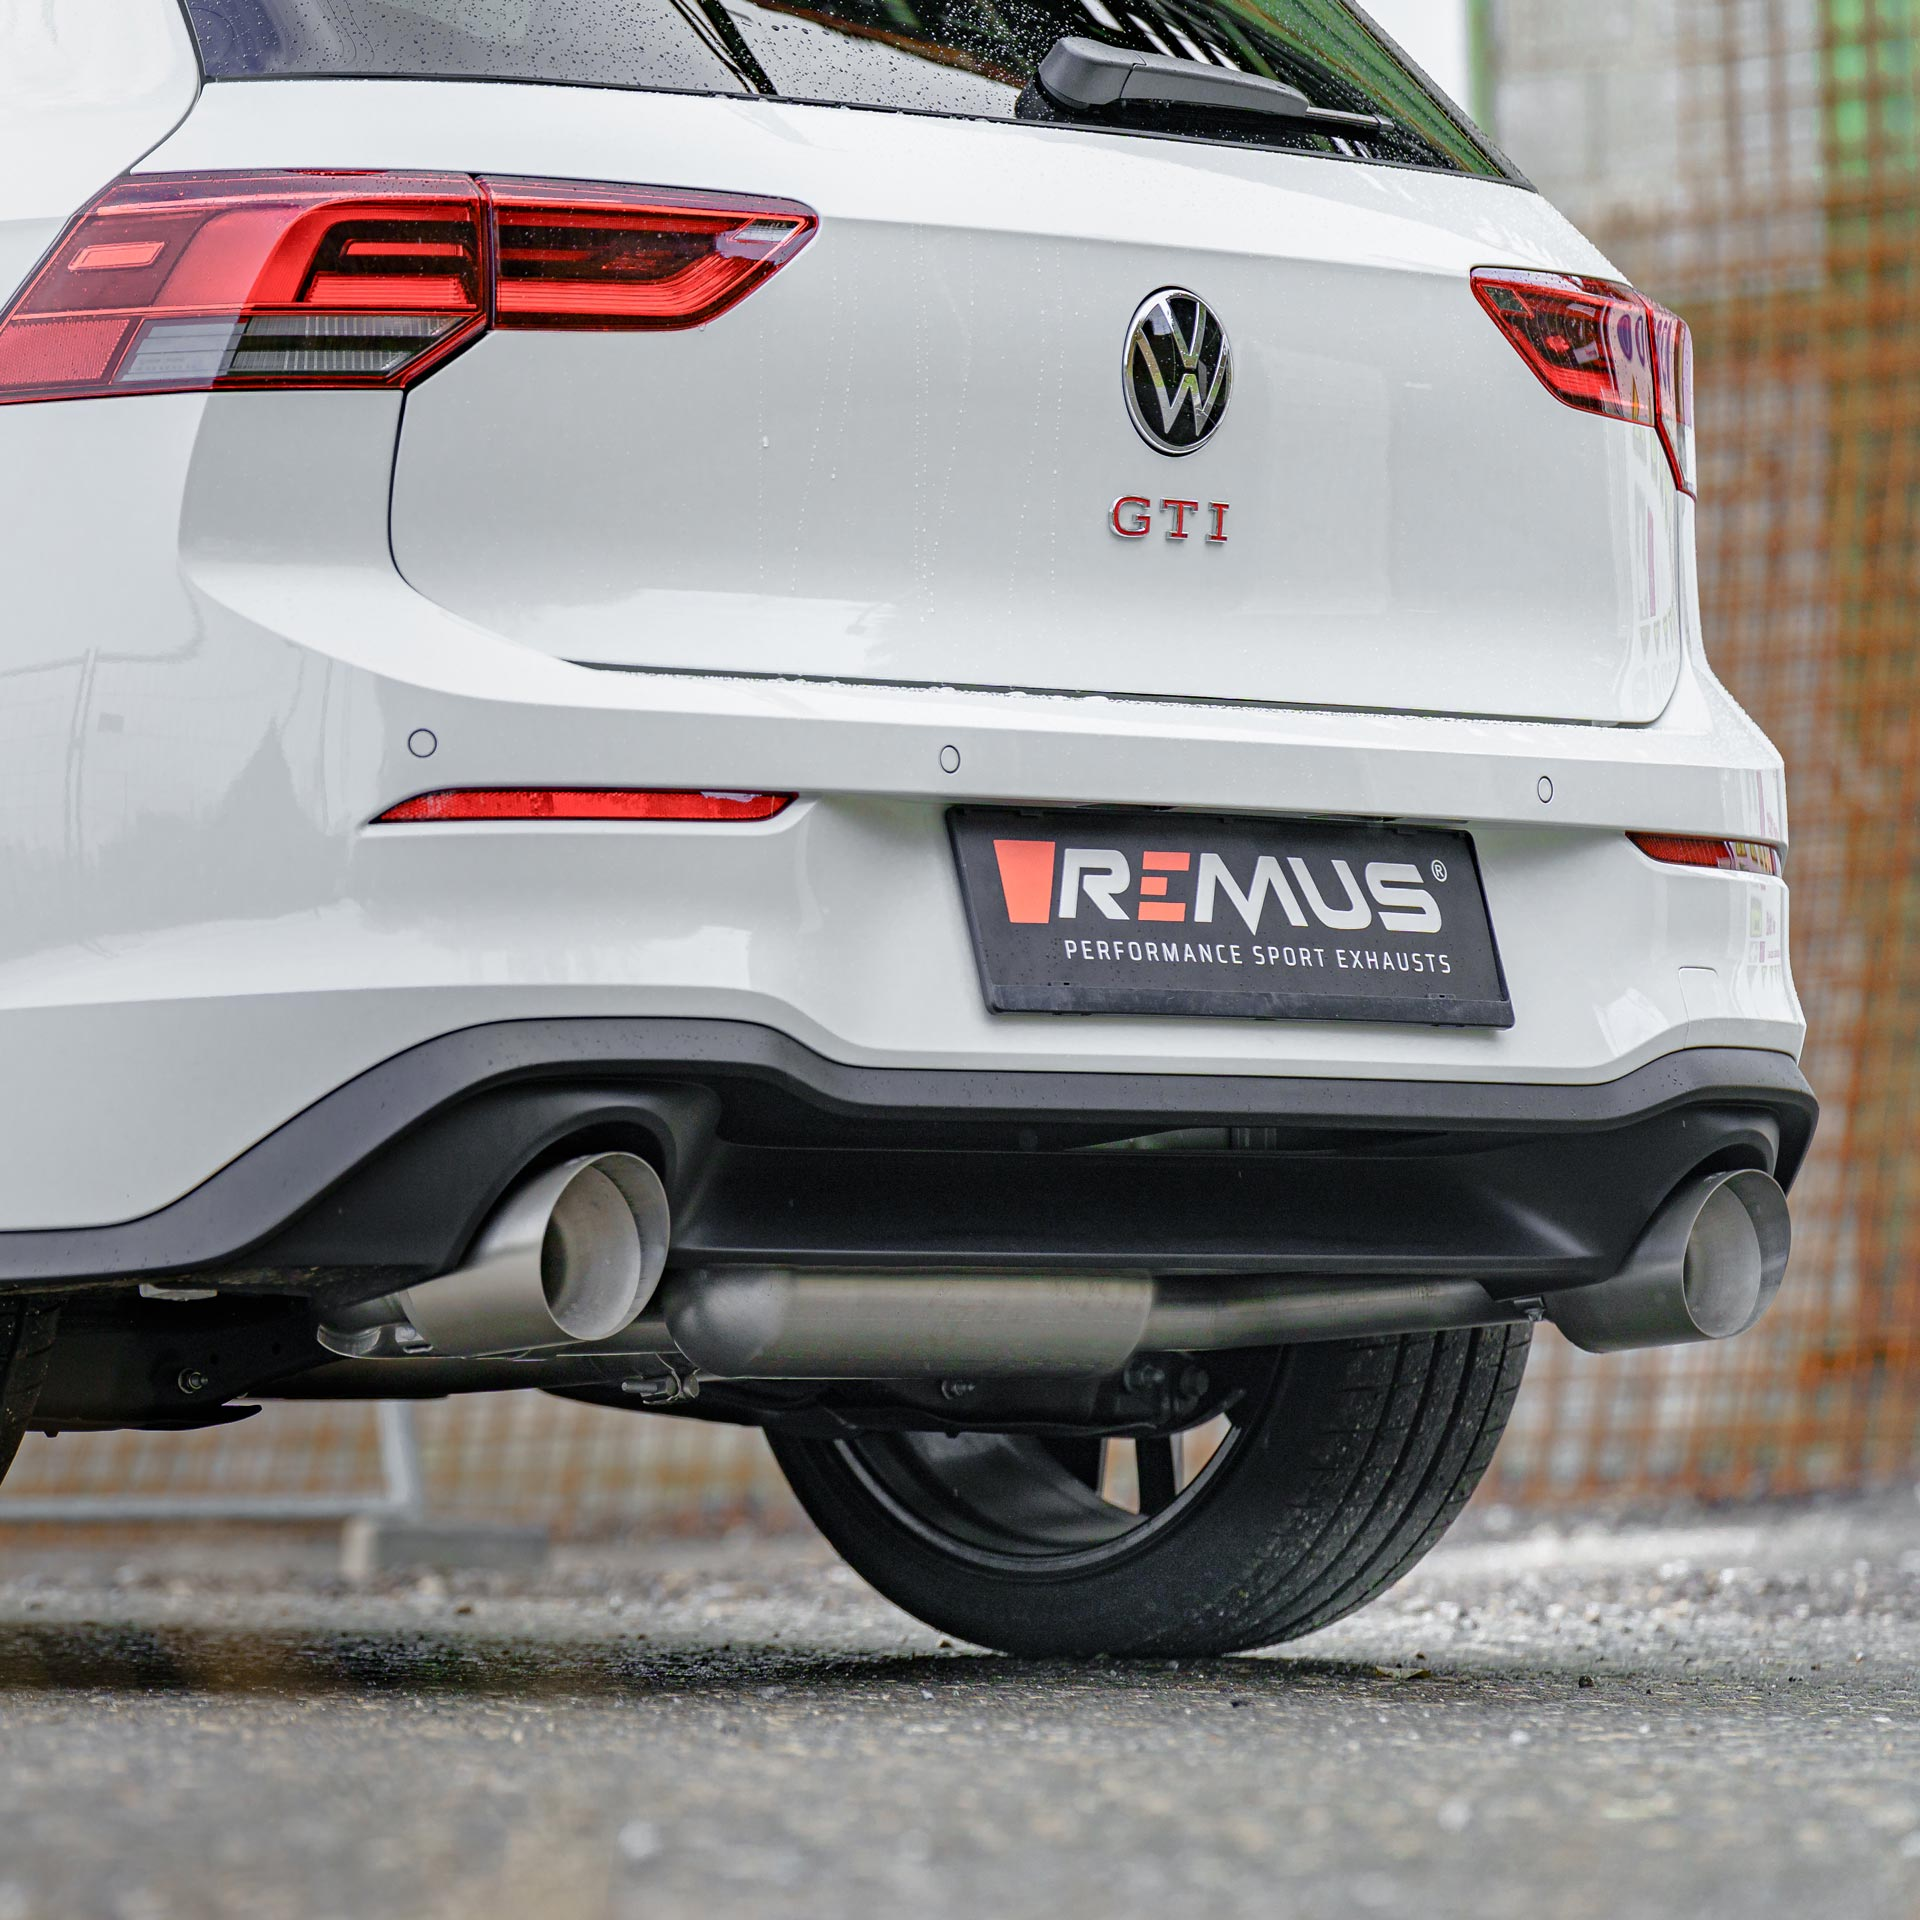 VW Golf 8 GTI REMUS sport exhaust system